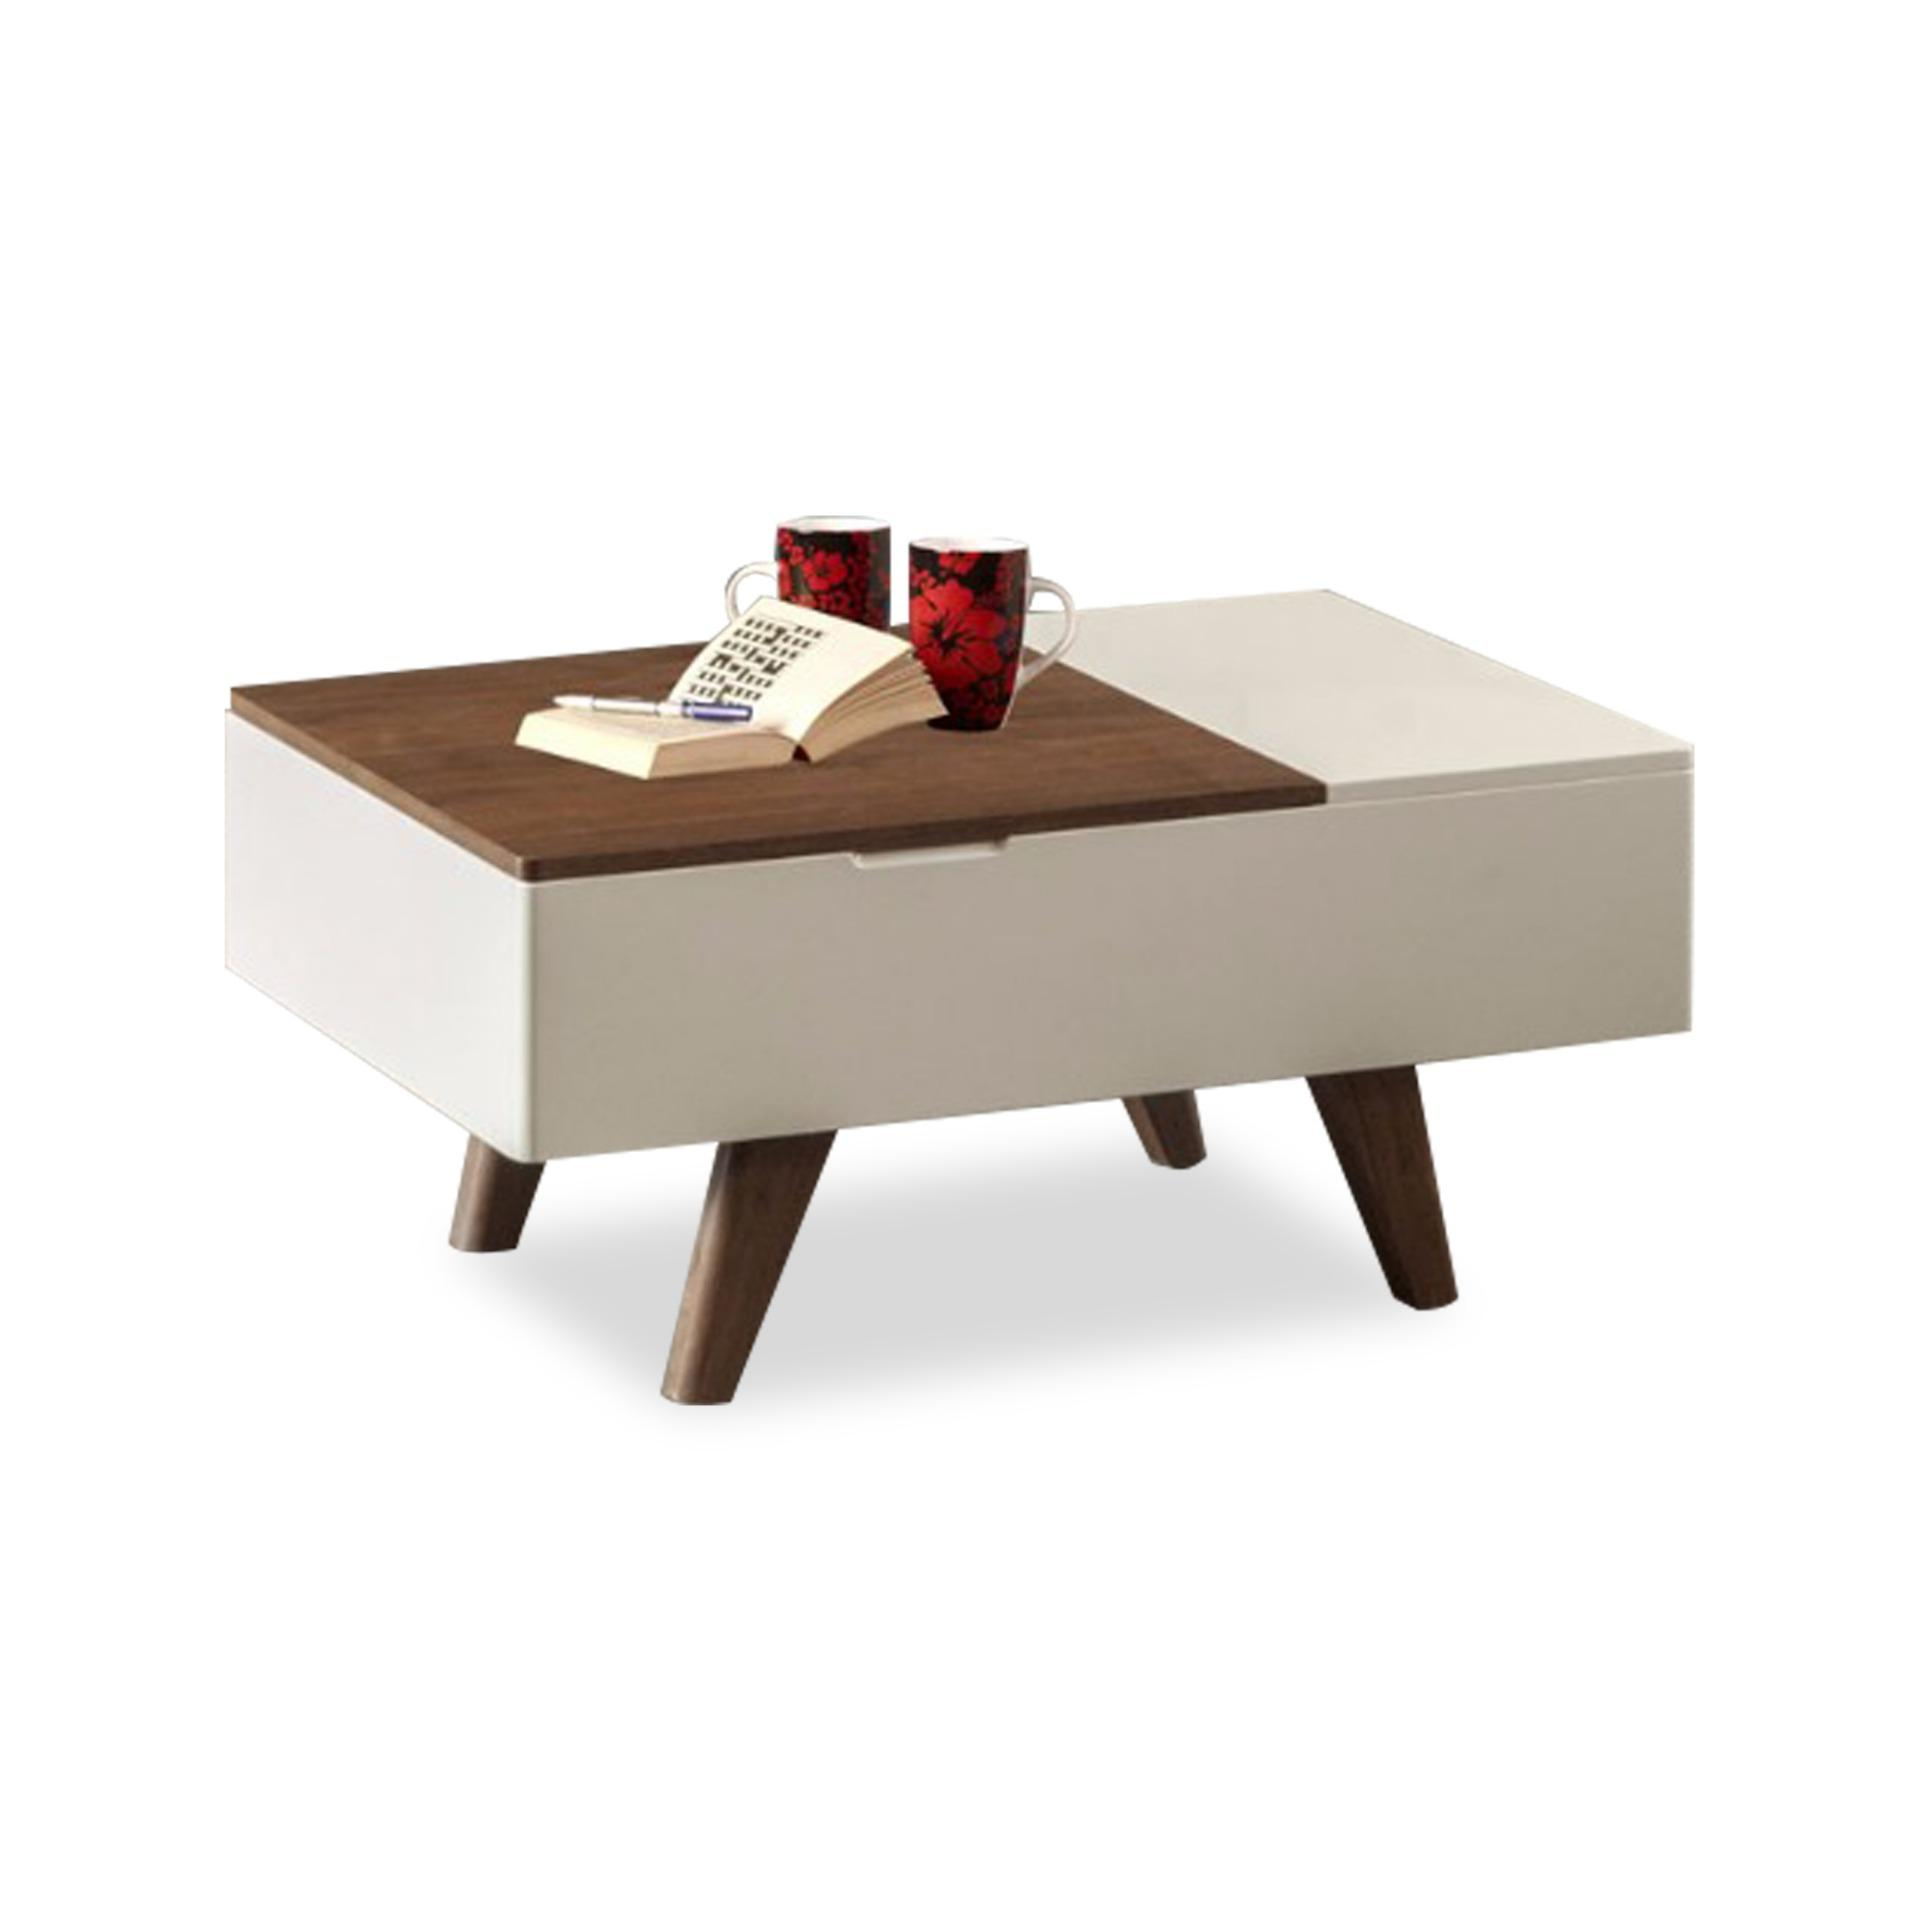 Alix Lift-Up Coffee Table (FREE DELIVERY)(FREE ASSEMBLY)